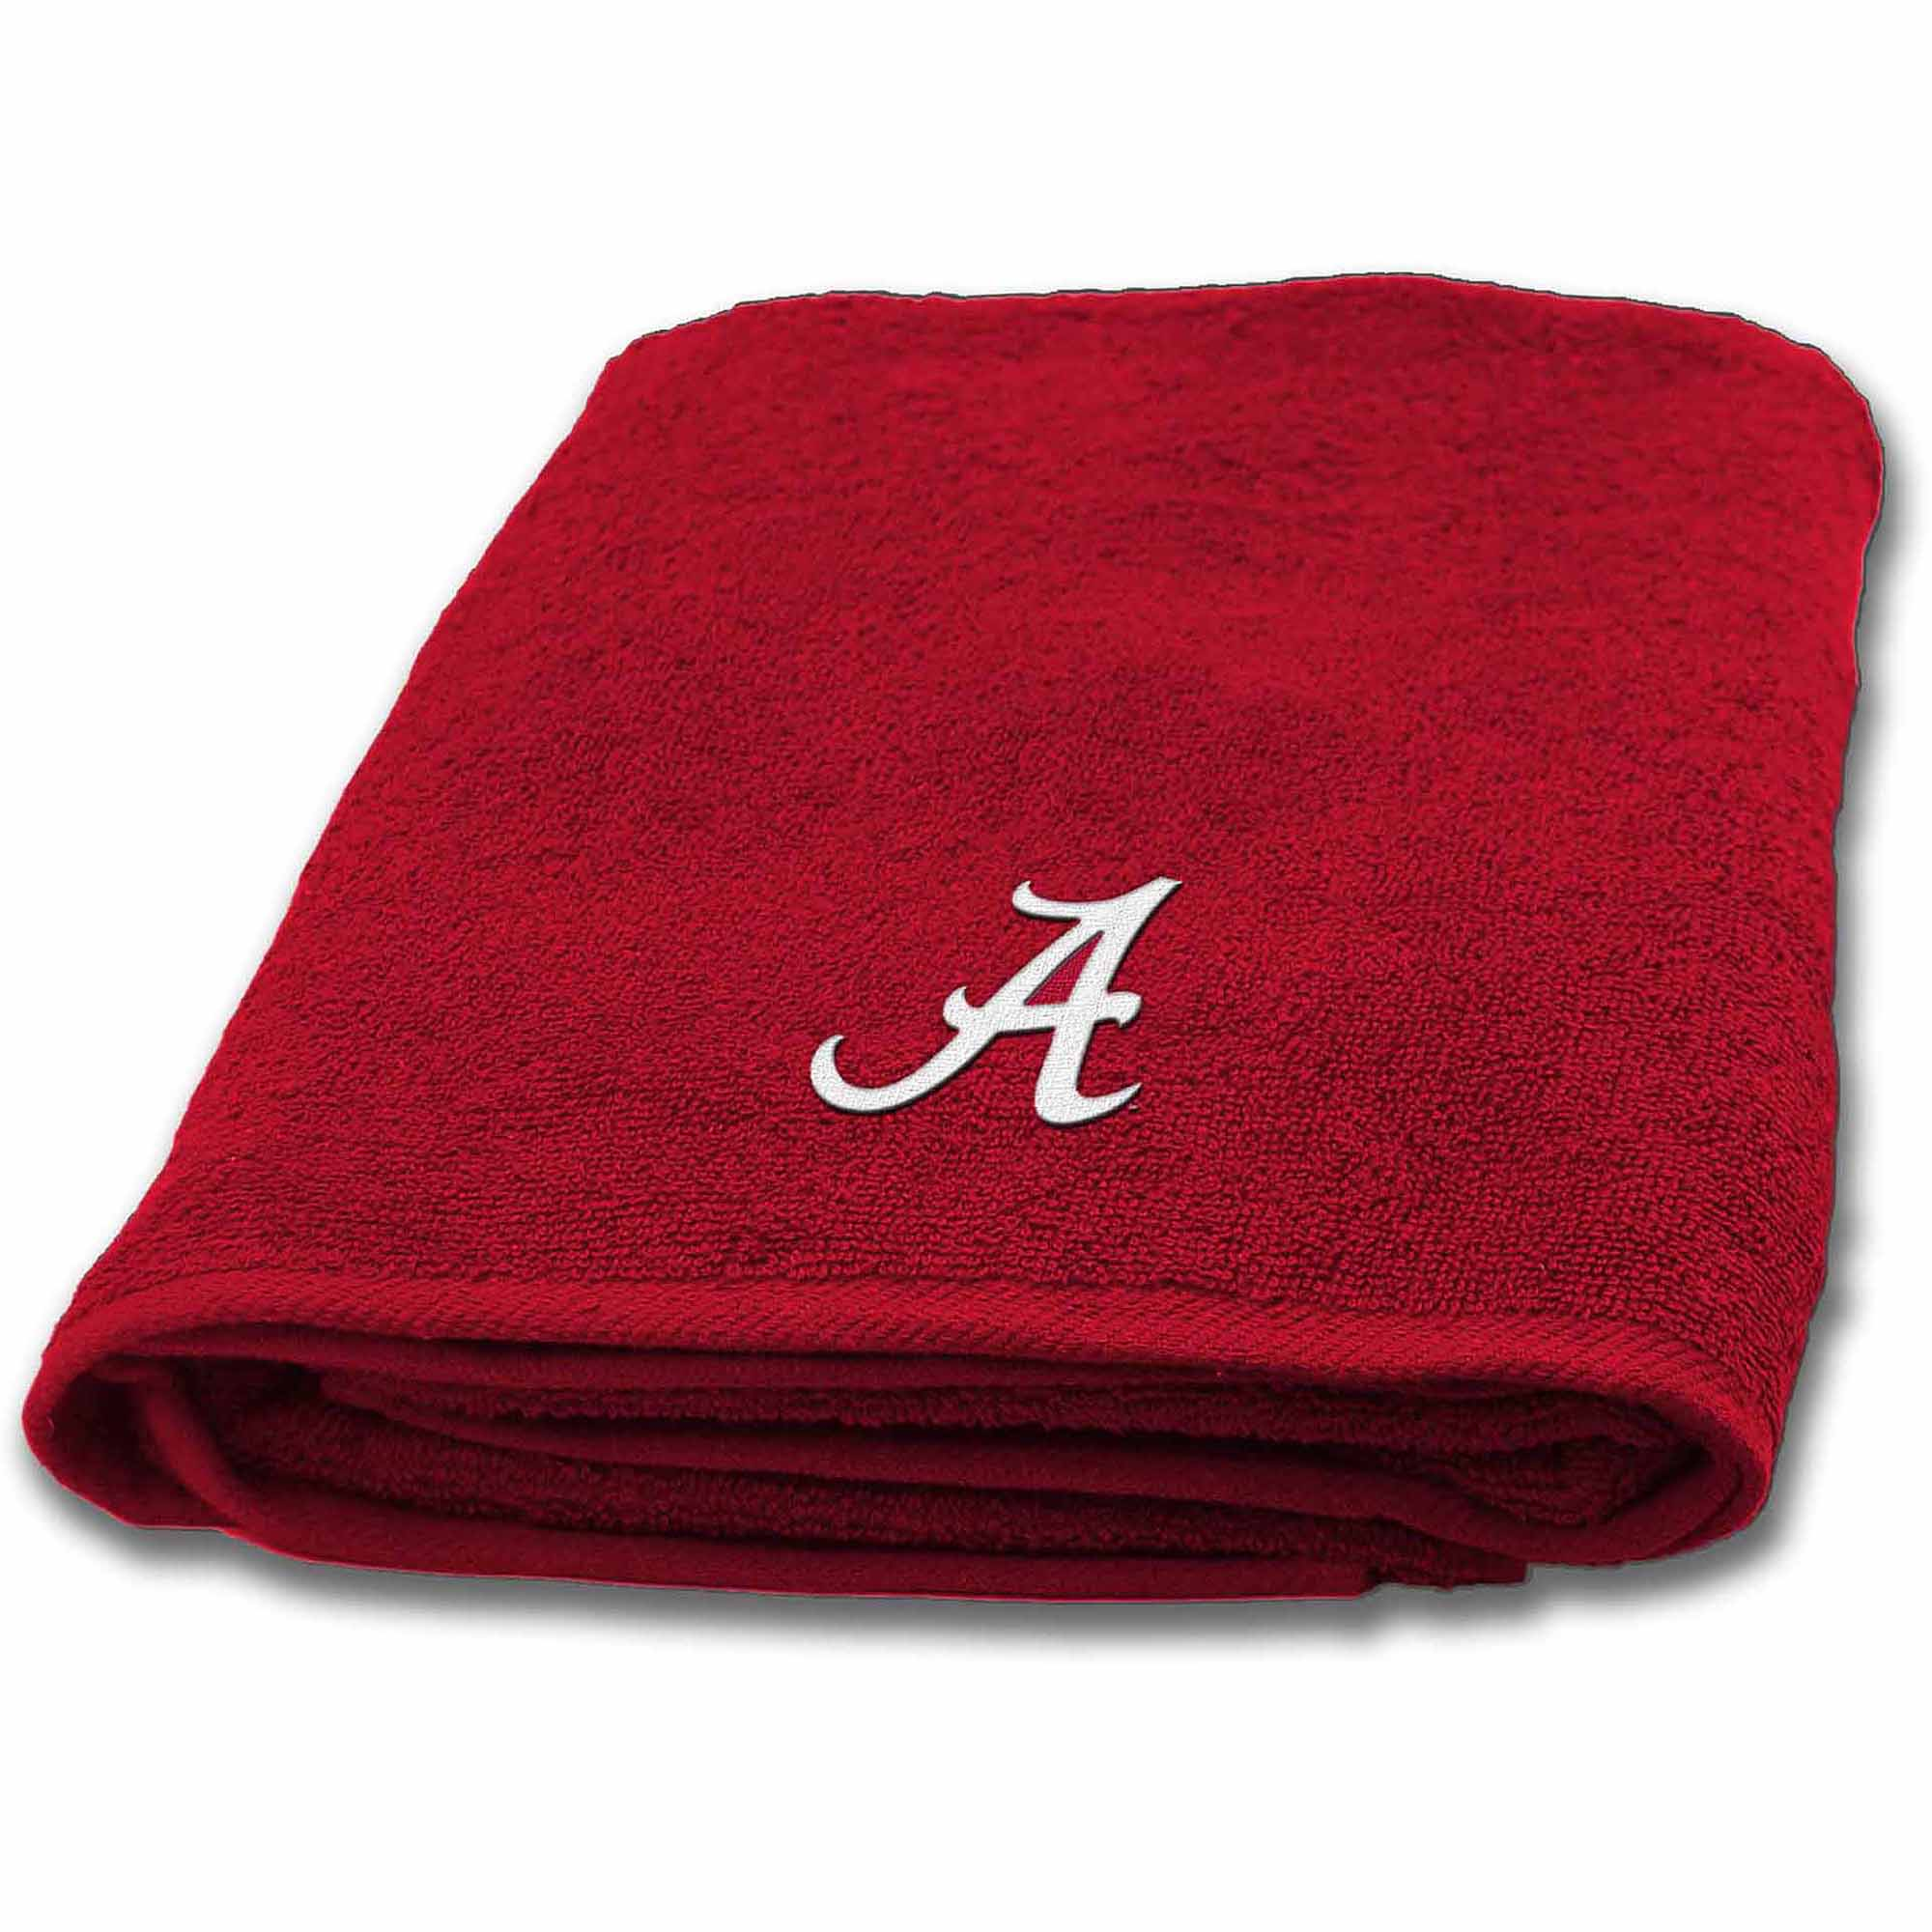 NCAA University of Alabama Decorative Bath Collection - Bath Towel